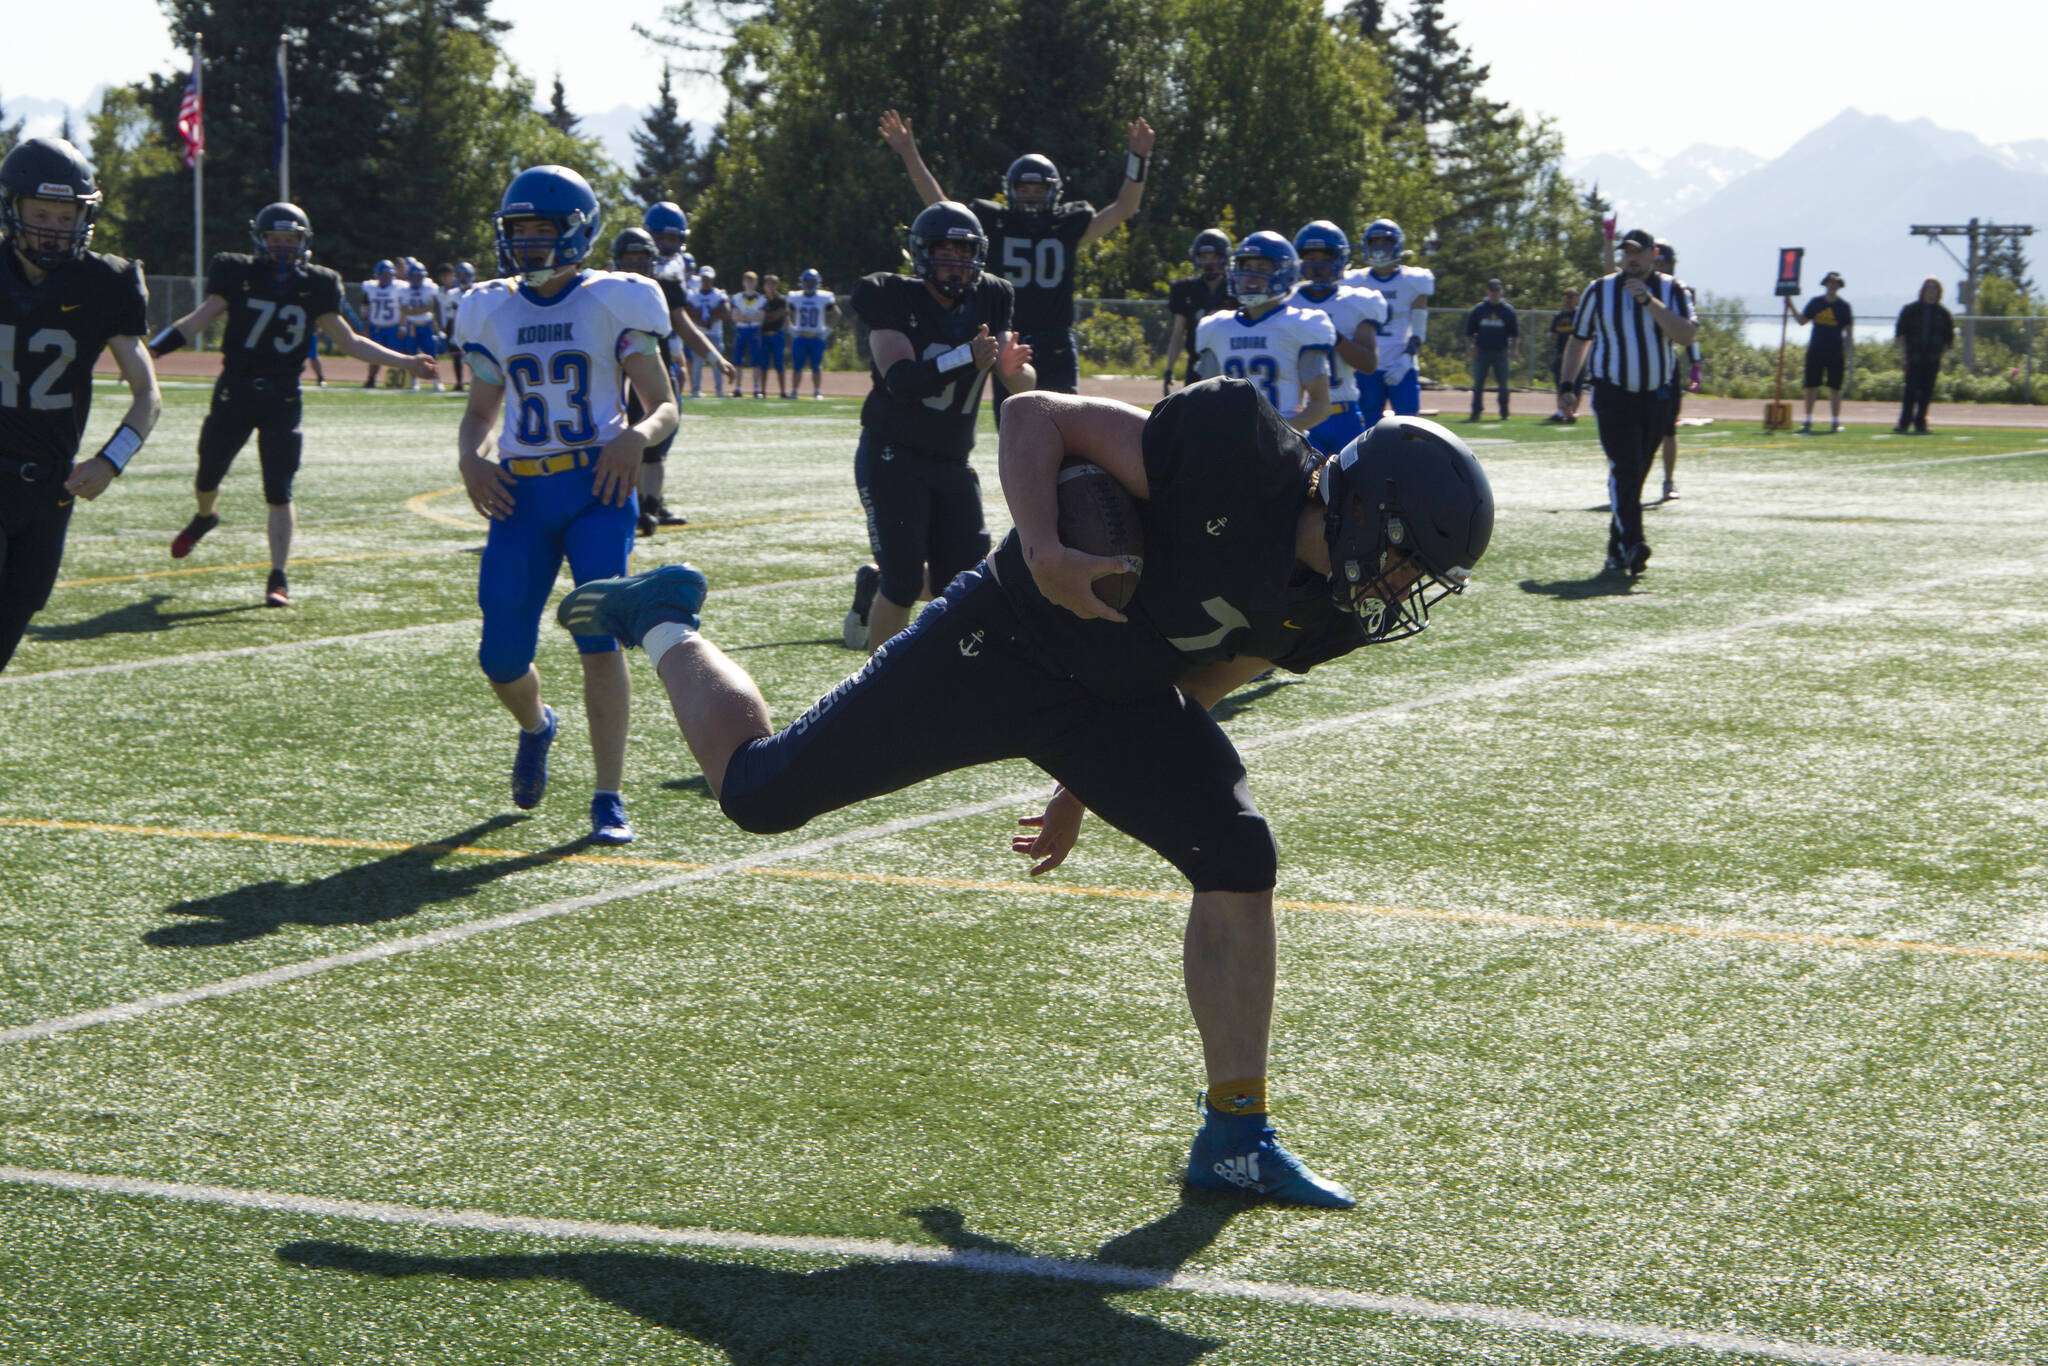 Carter Tennison scores a touchdown for the Homer Mariners against Kodiak High School on Saturday, Aug.28. The Mariners won 34-0. (Photo by Sarah Knapp/Homer News)